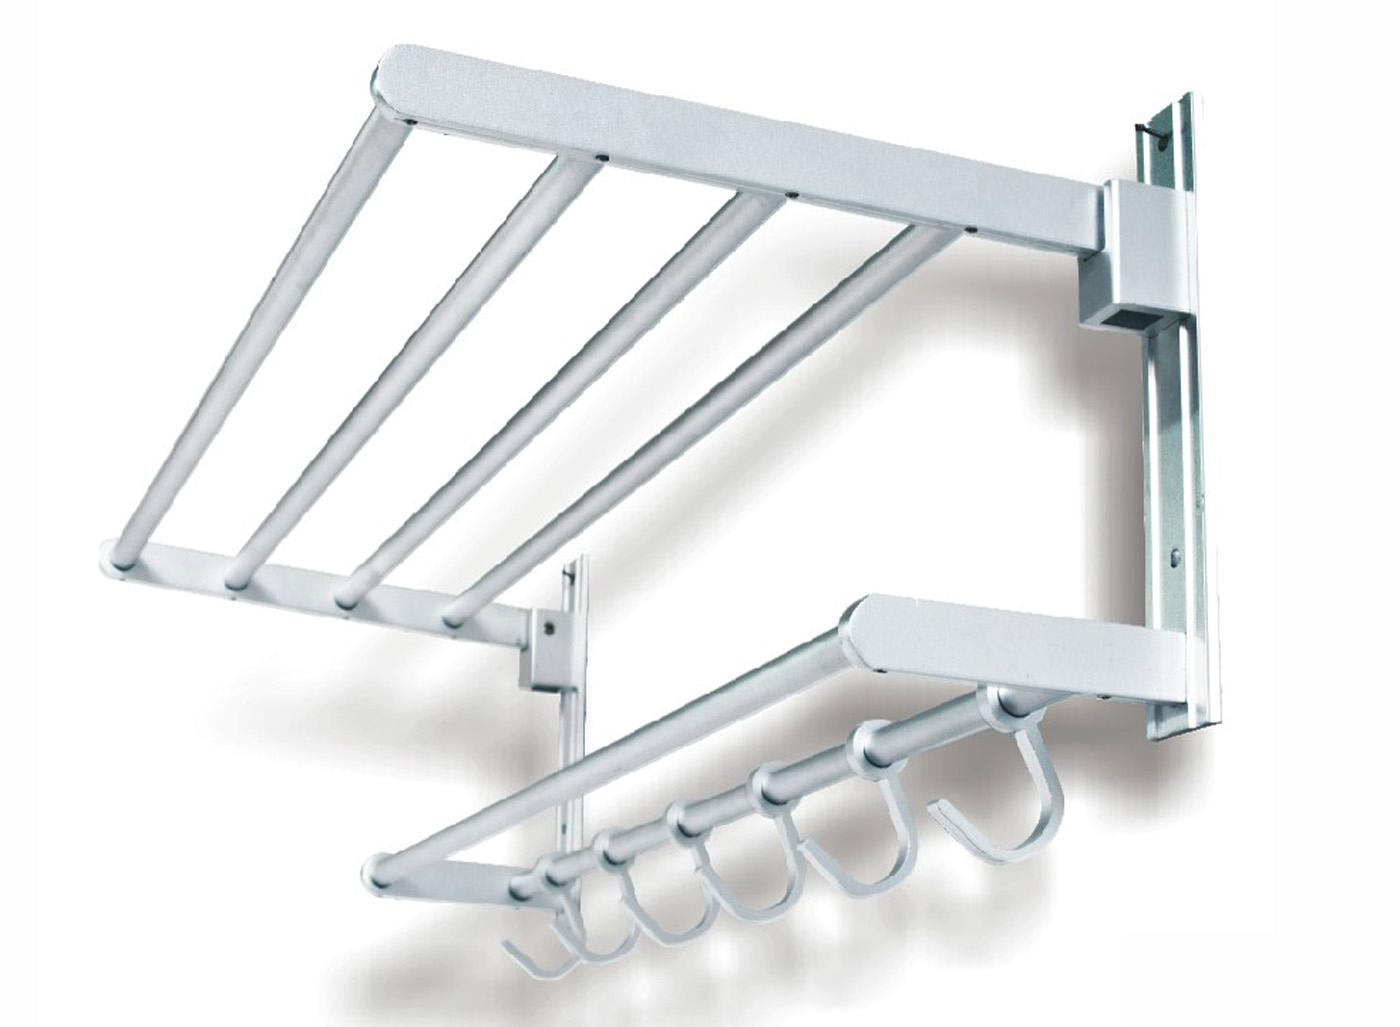 Space aluminum bathroom hardware, hardware hanger, bathroom towel rack 5